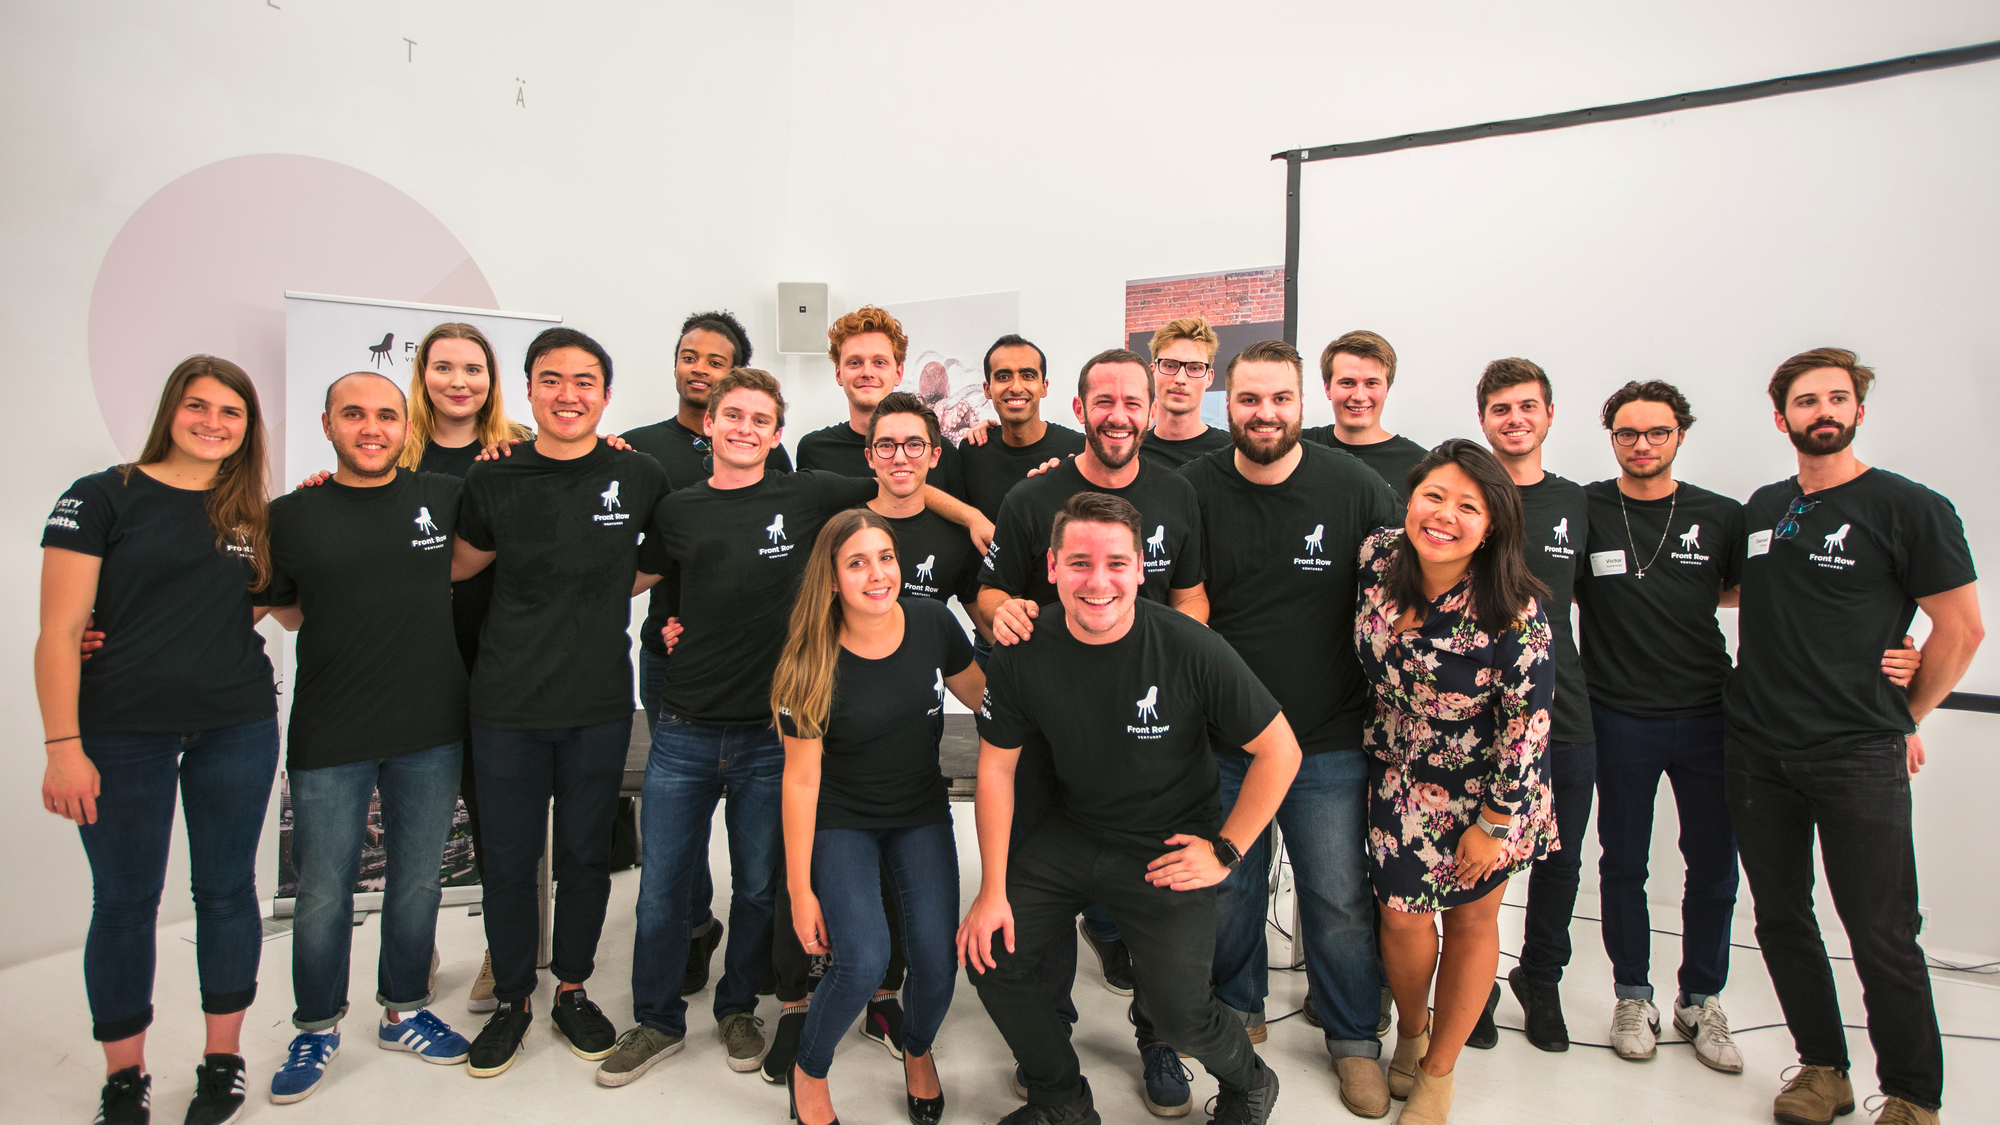 The team of 20 people from Front Row Venture